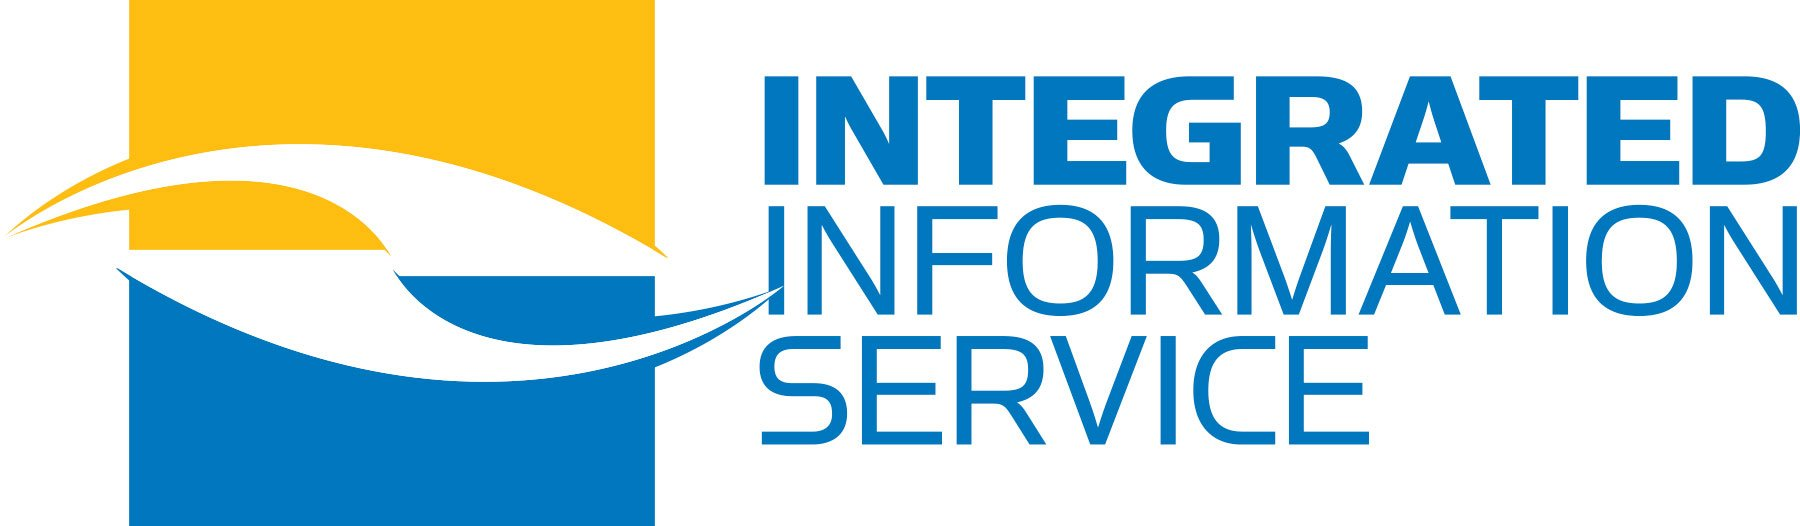 Intergrated Information Services